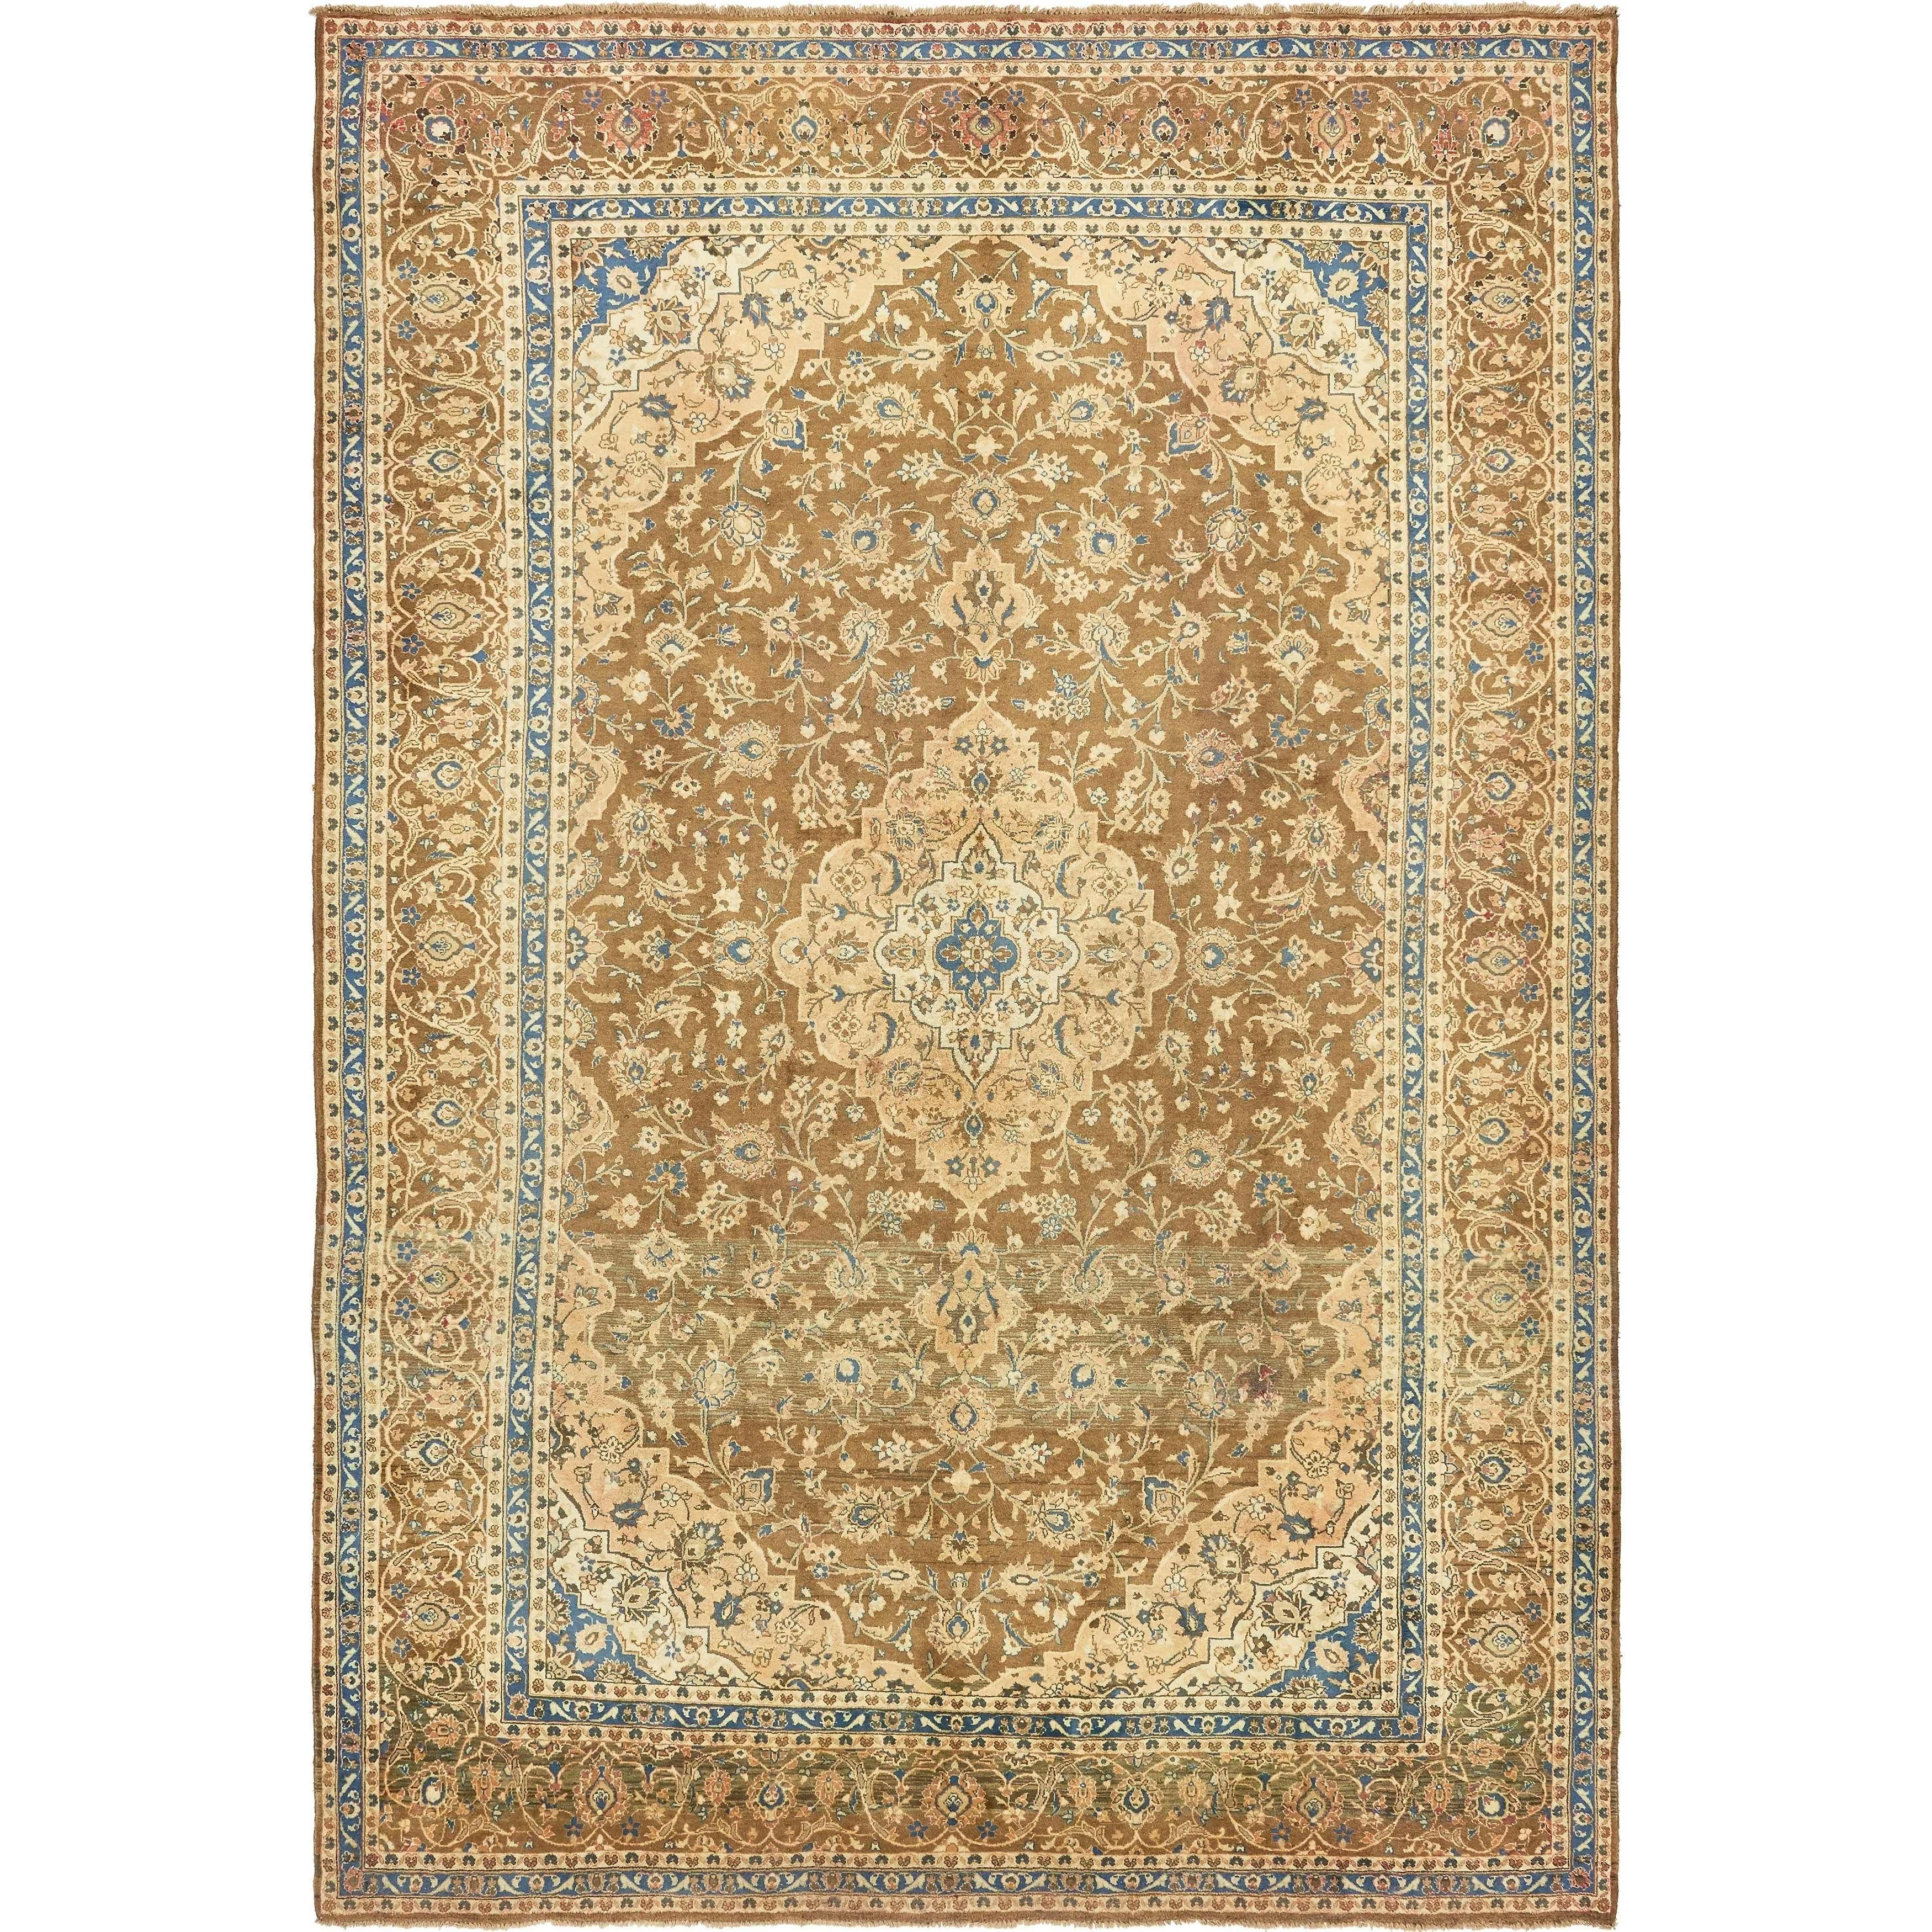 Hand Knotted Kashan Semi Antique Wool Area Rug - 9 8 x 14 4 (Olive - 9 8 x 14 4)